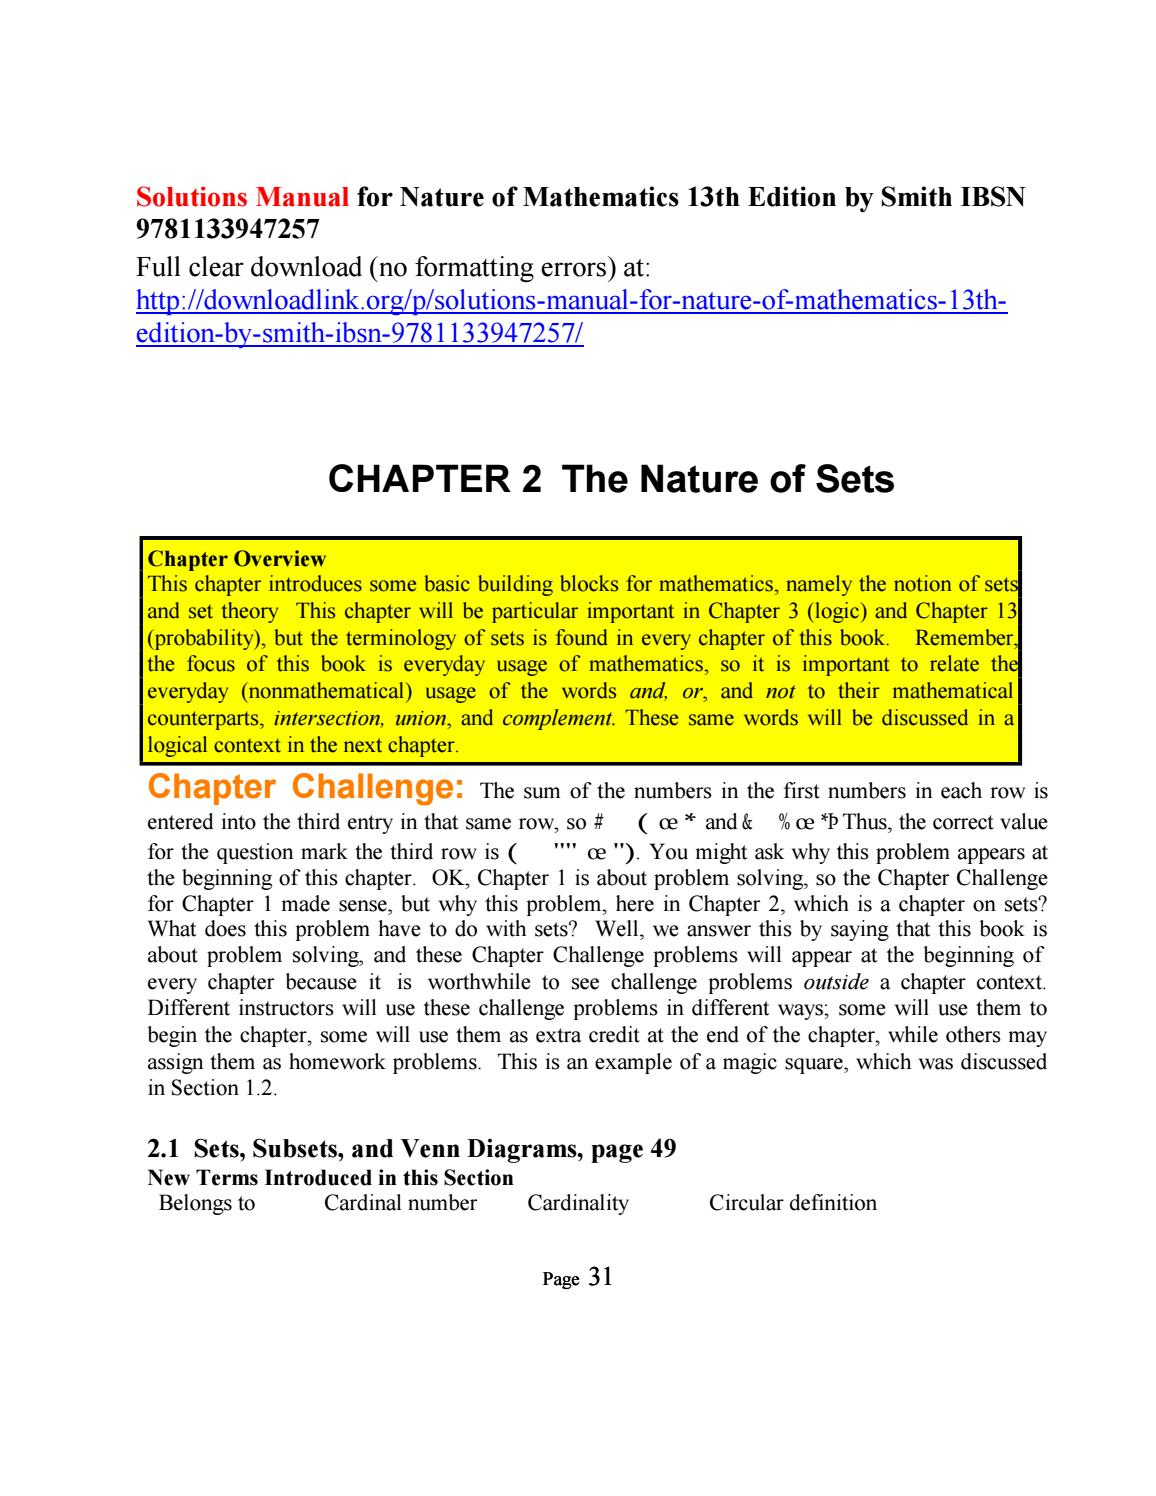 hight resolution of solutions manual for nature of mathematics 13th edition by smith ibsn 9781133947257